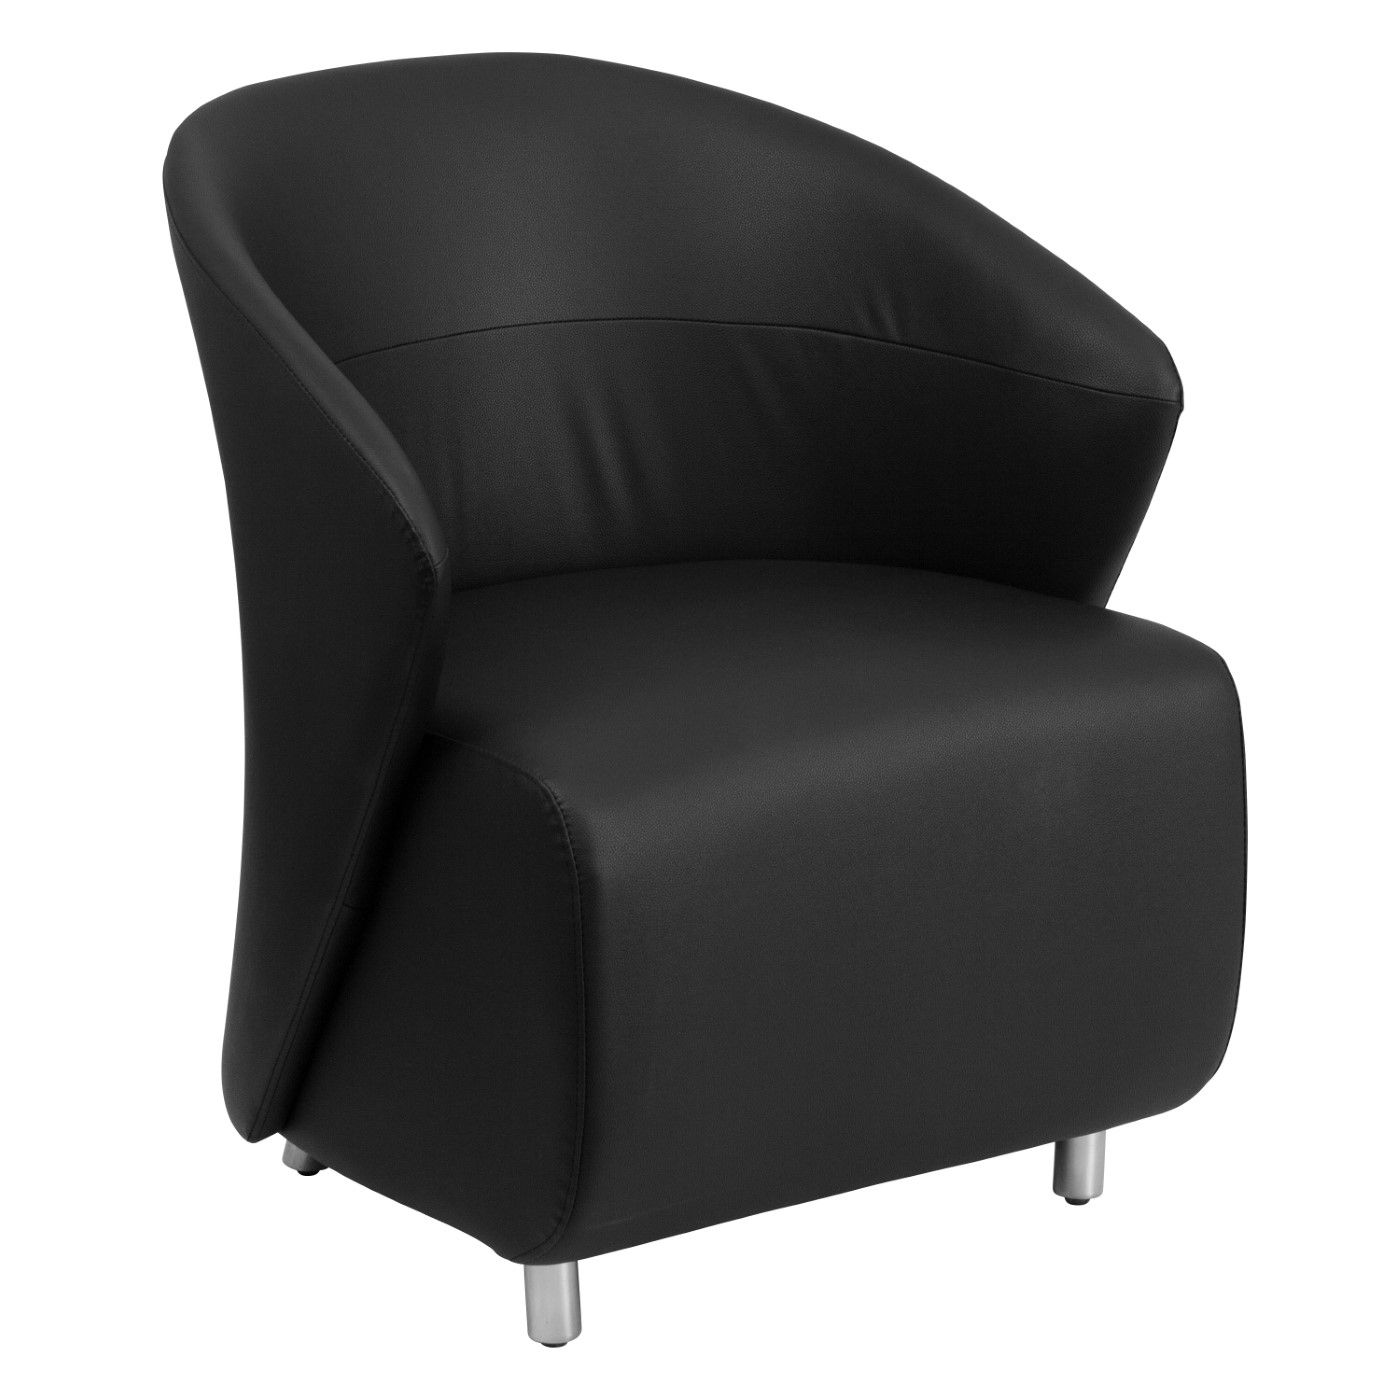 Black LeatherSoft Curved Barrel Back Lounge Chair